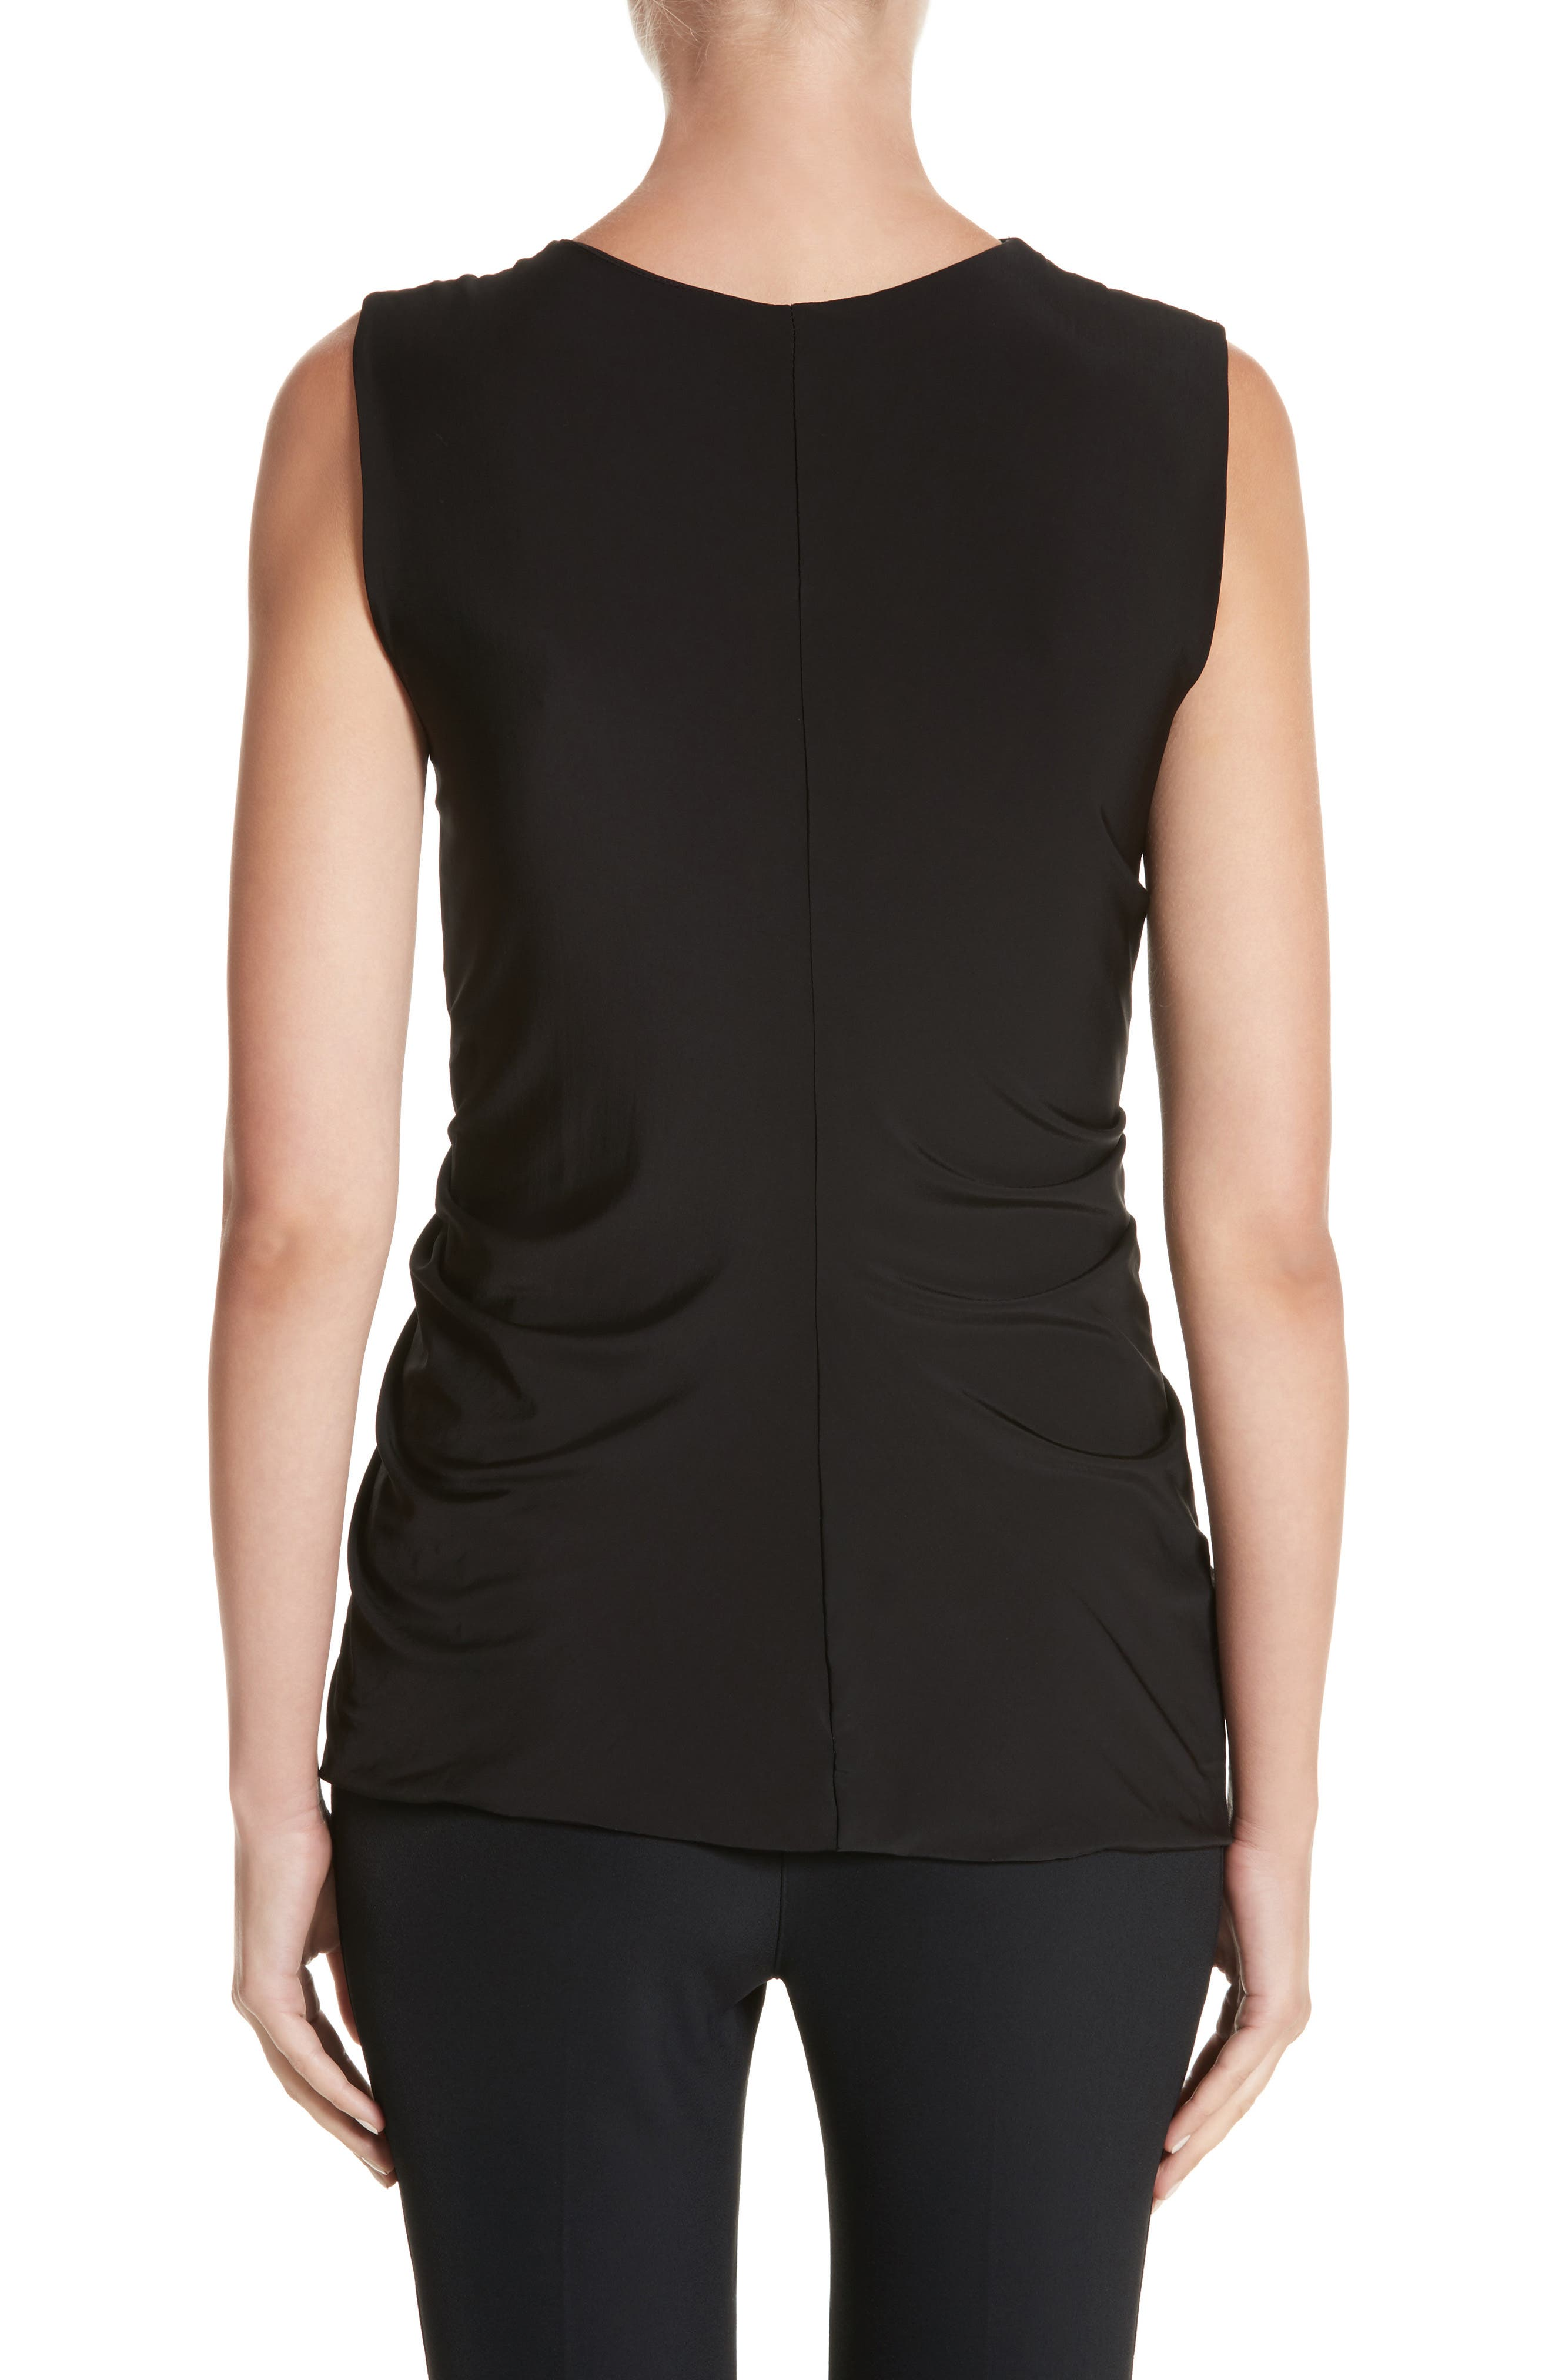 Jason Wu Asymmetrical Ruched Jersey Top,                             Alternate thumbnail 2, color,                             001